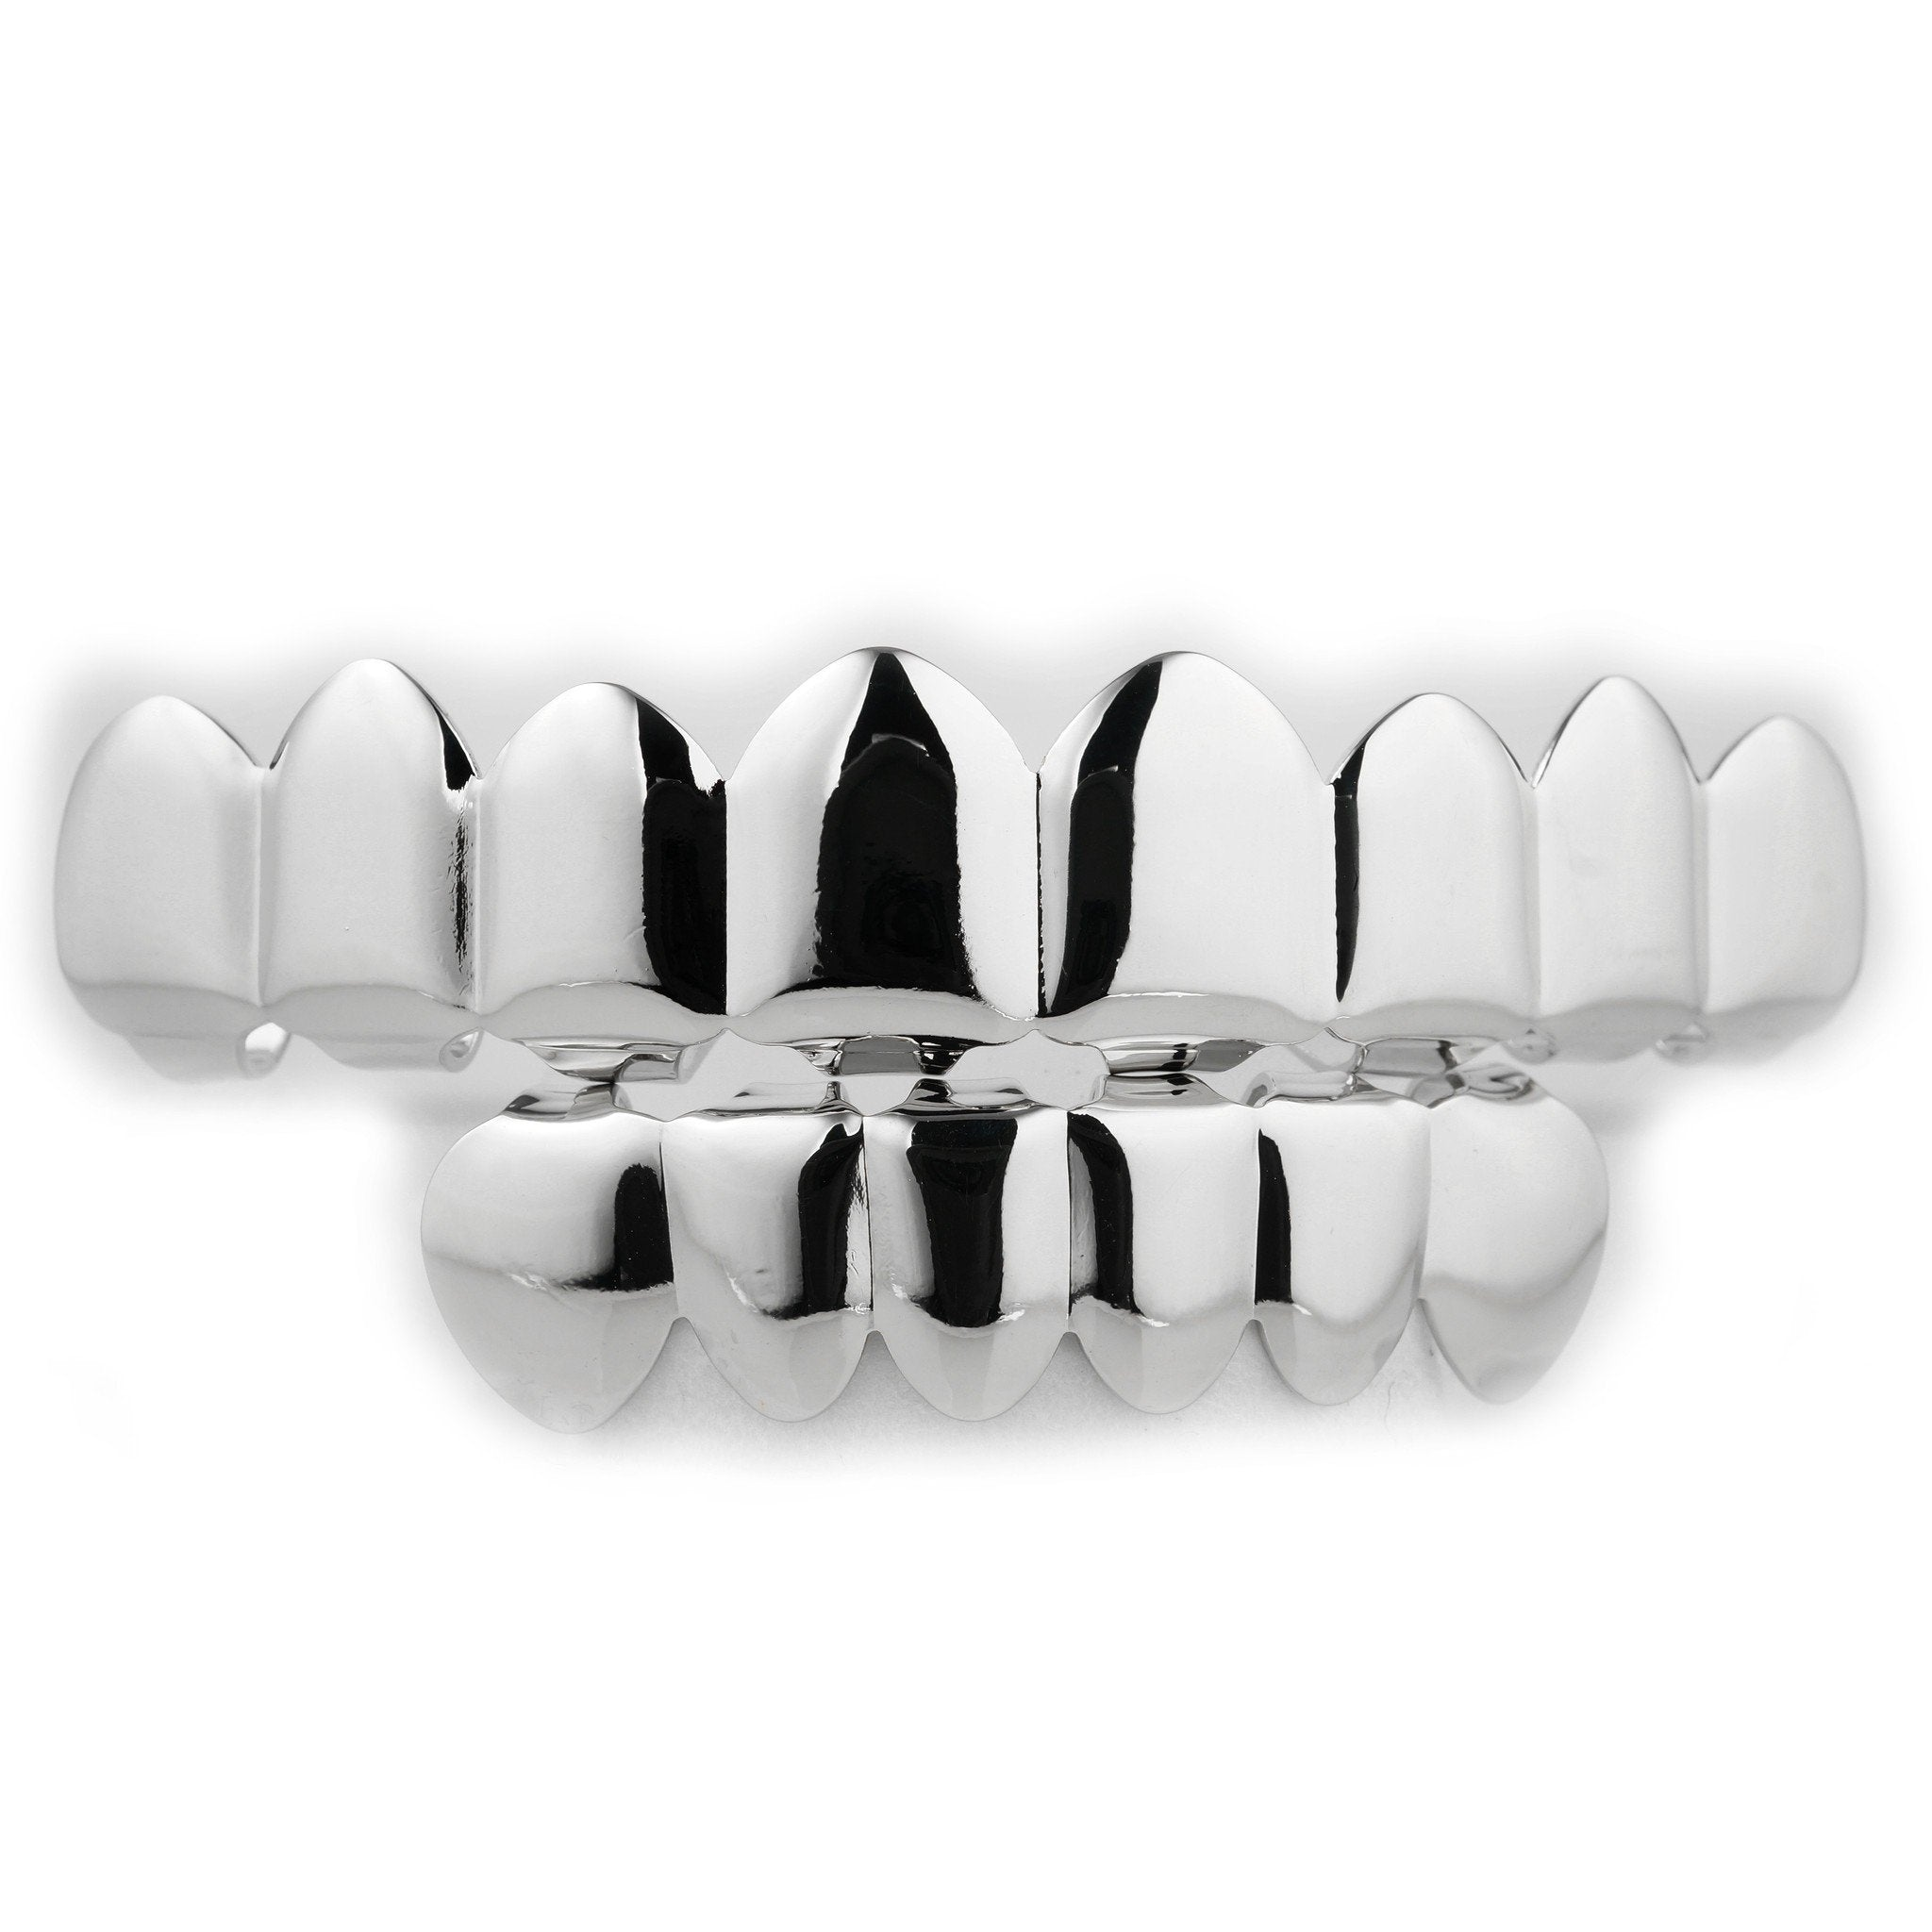 Affordable 14k 8 Tooth White Gold Hip Hop Grillz Set - White Background